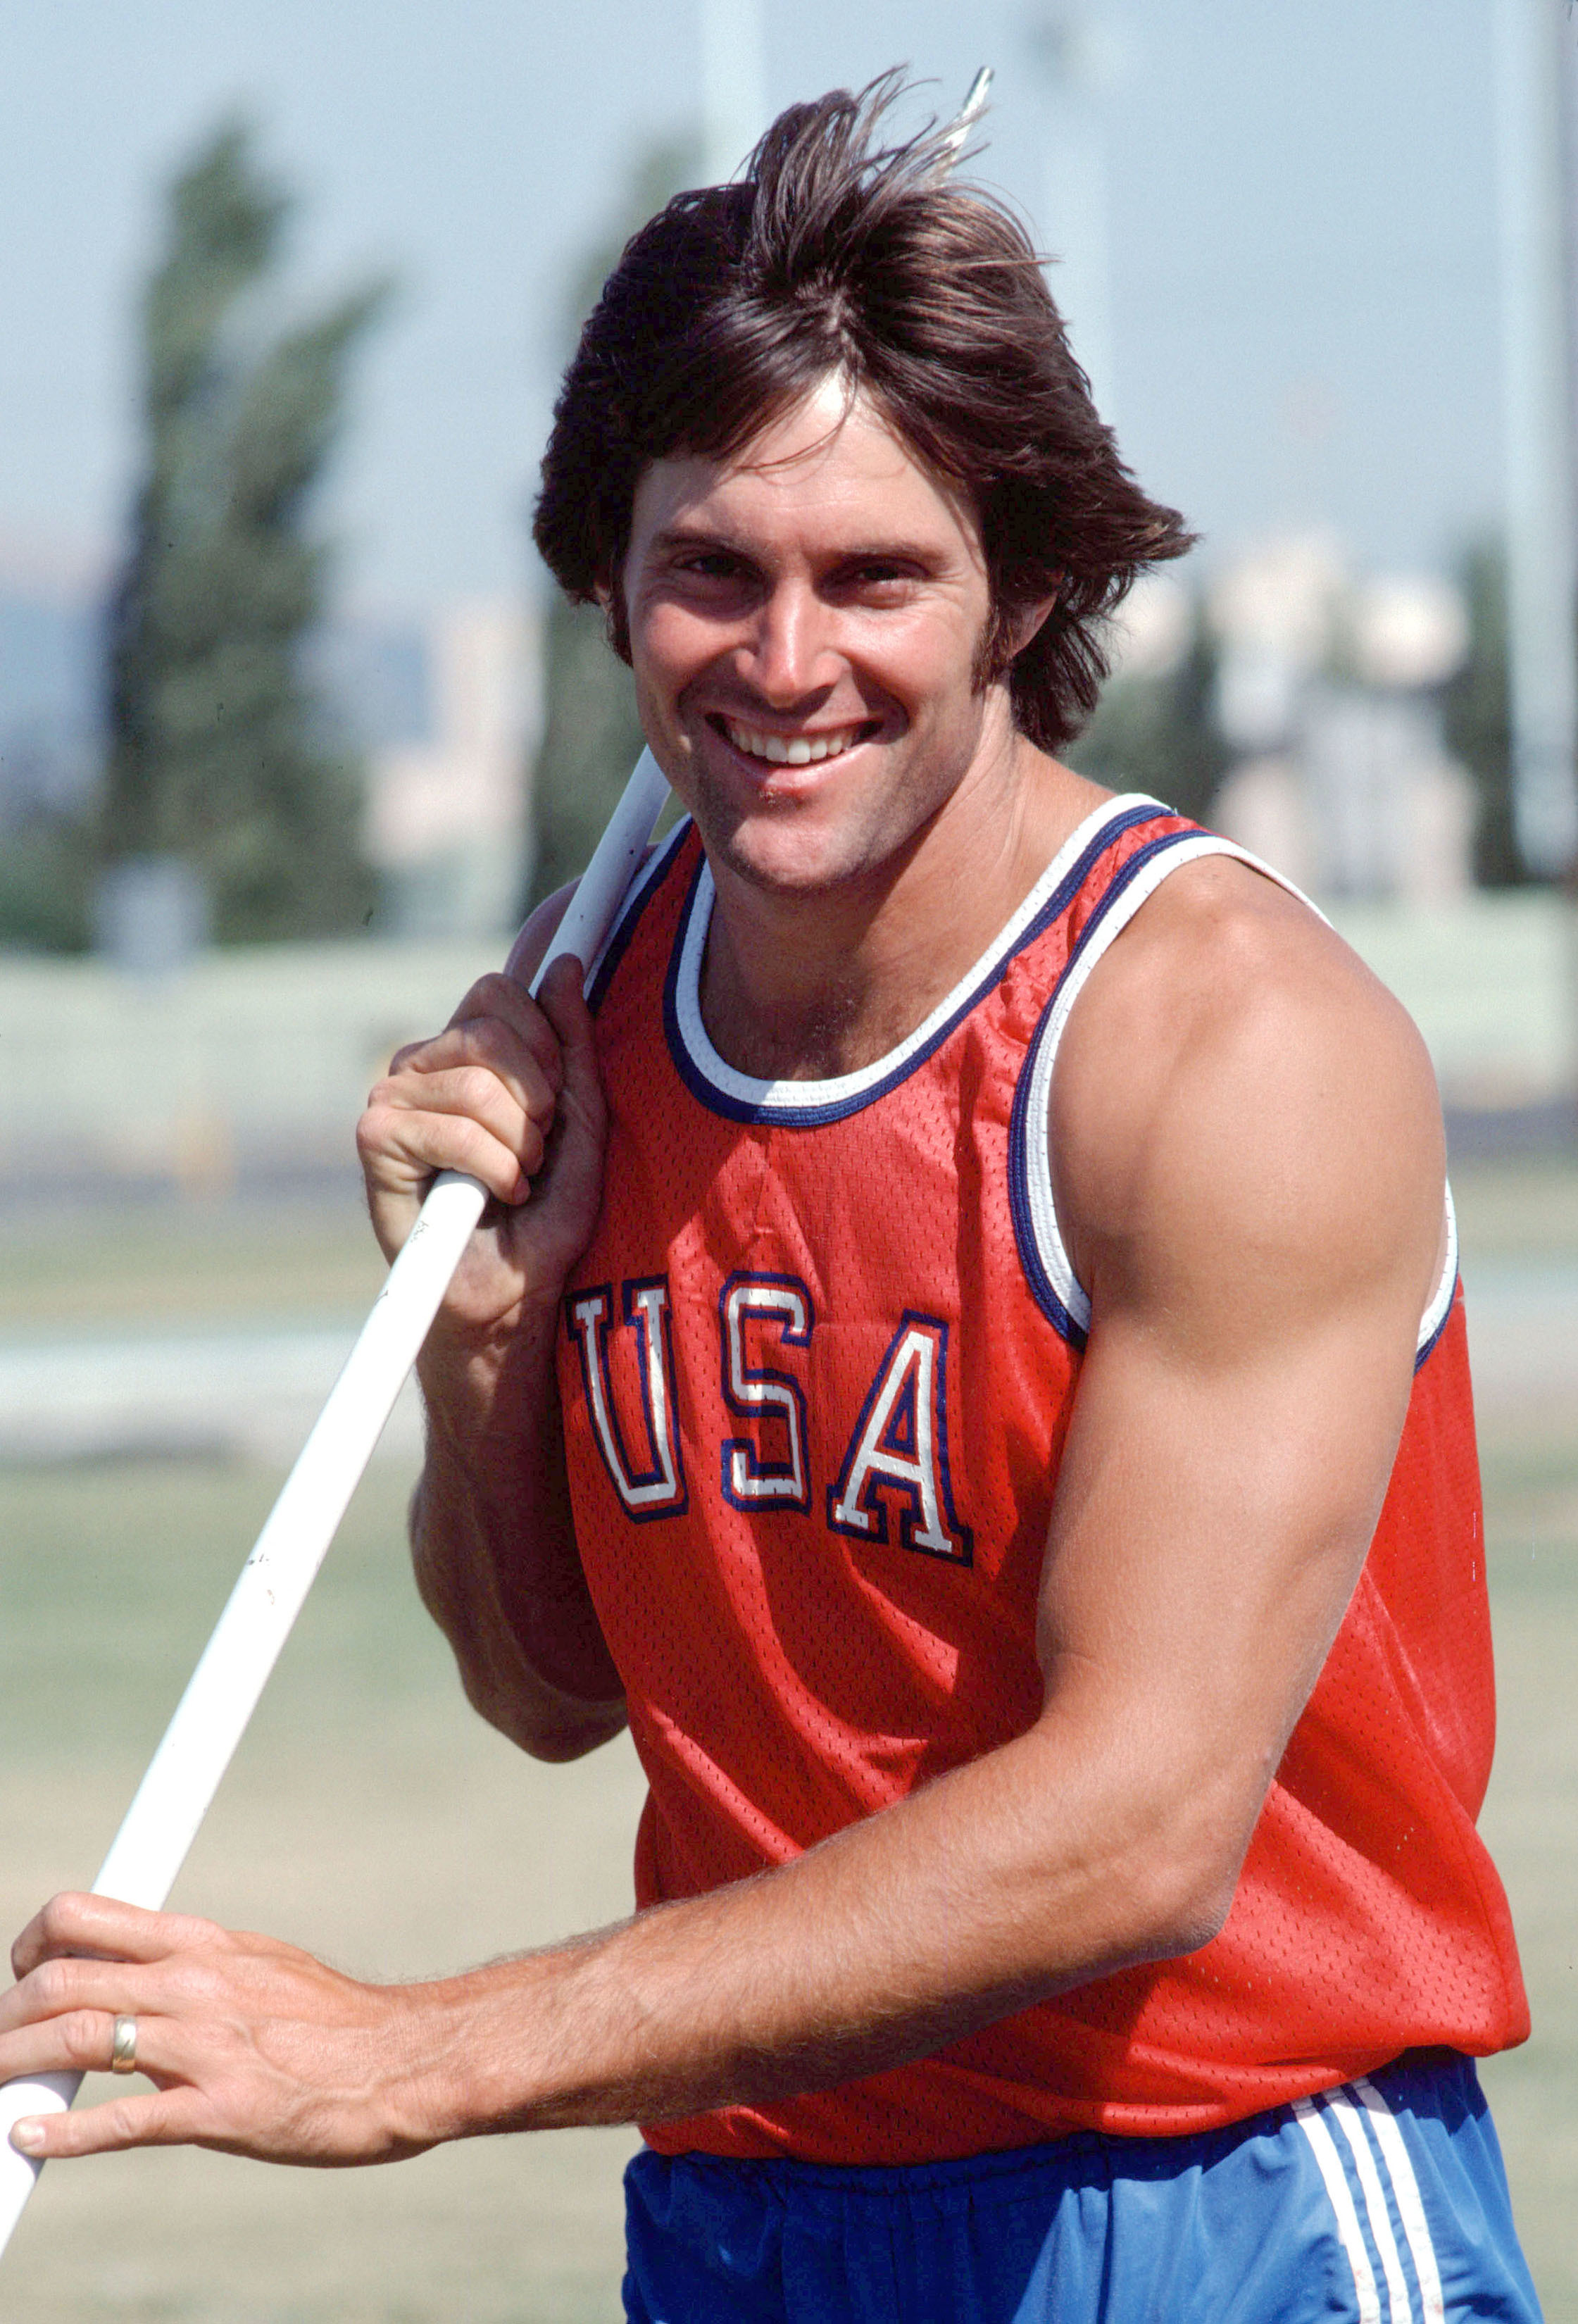 Bruce Jenner trains for the decathlon for the 1976 Summer Olympics in Montreal.